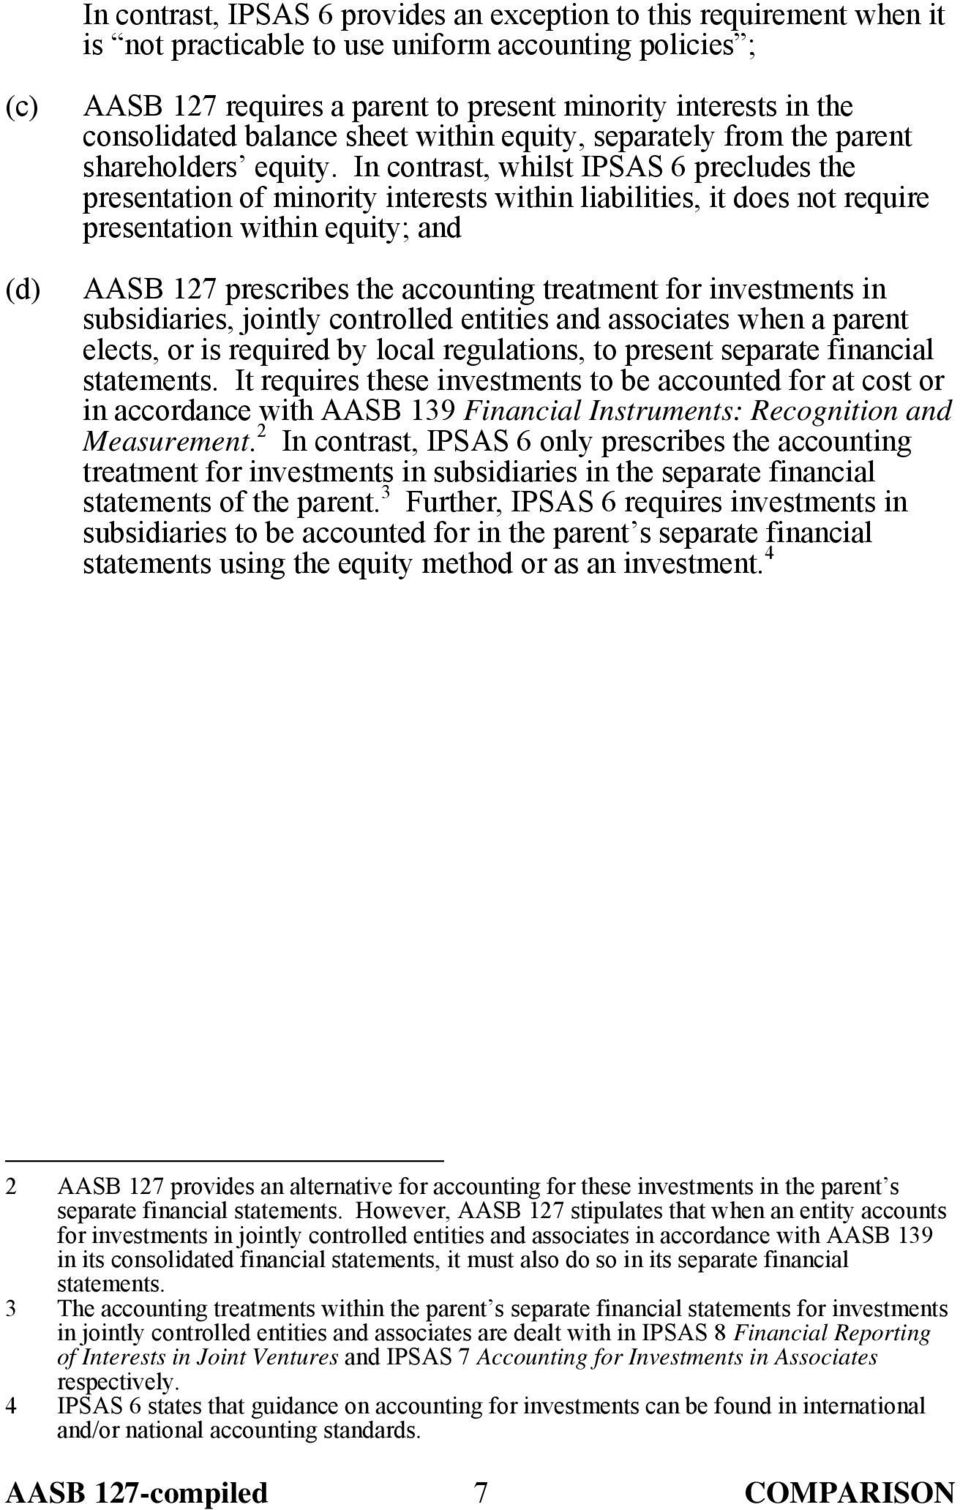 In contrast, whilst IPSAS 6 precludes the presentation of minority interests within liabilities, it does not require presentation within equity; and AASB 127 prescribes the accounting treatment for